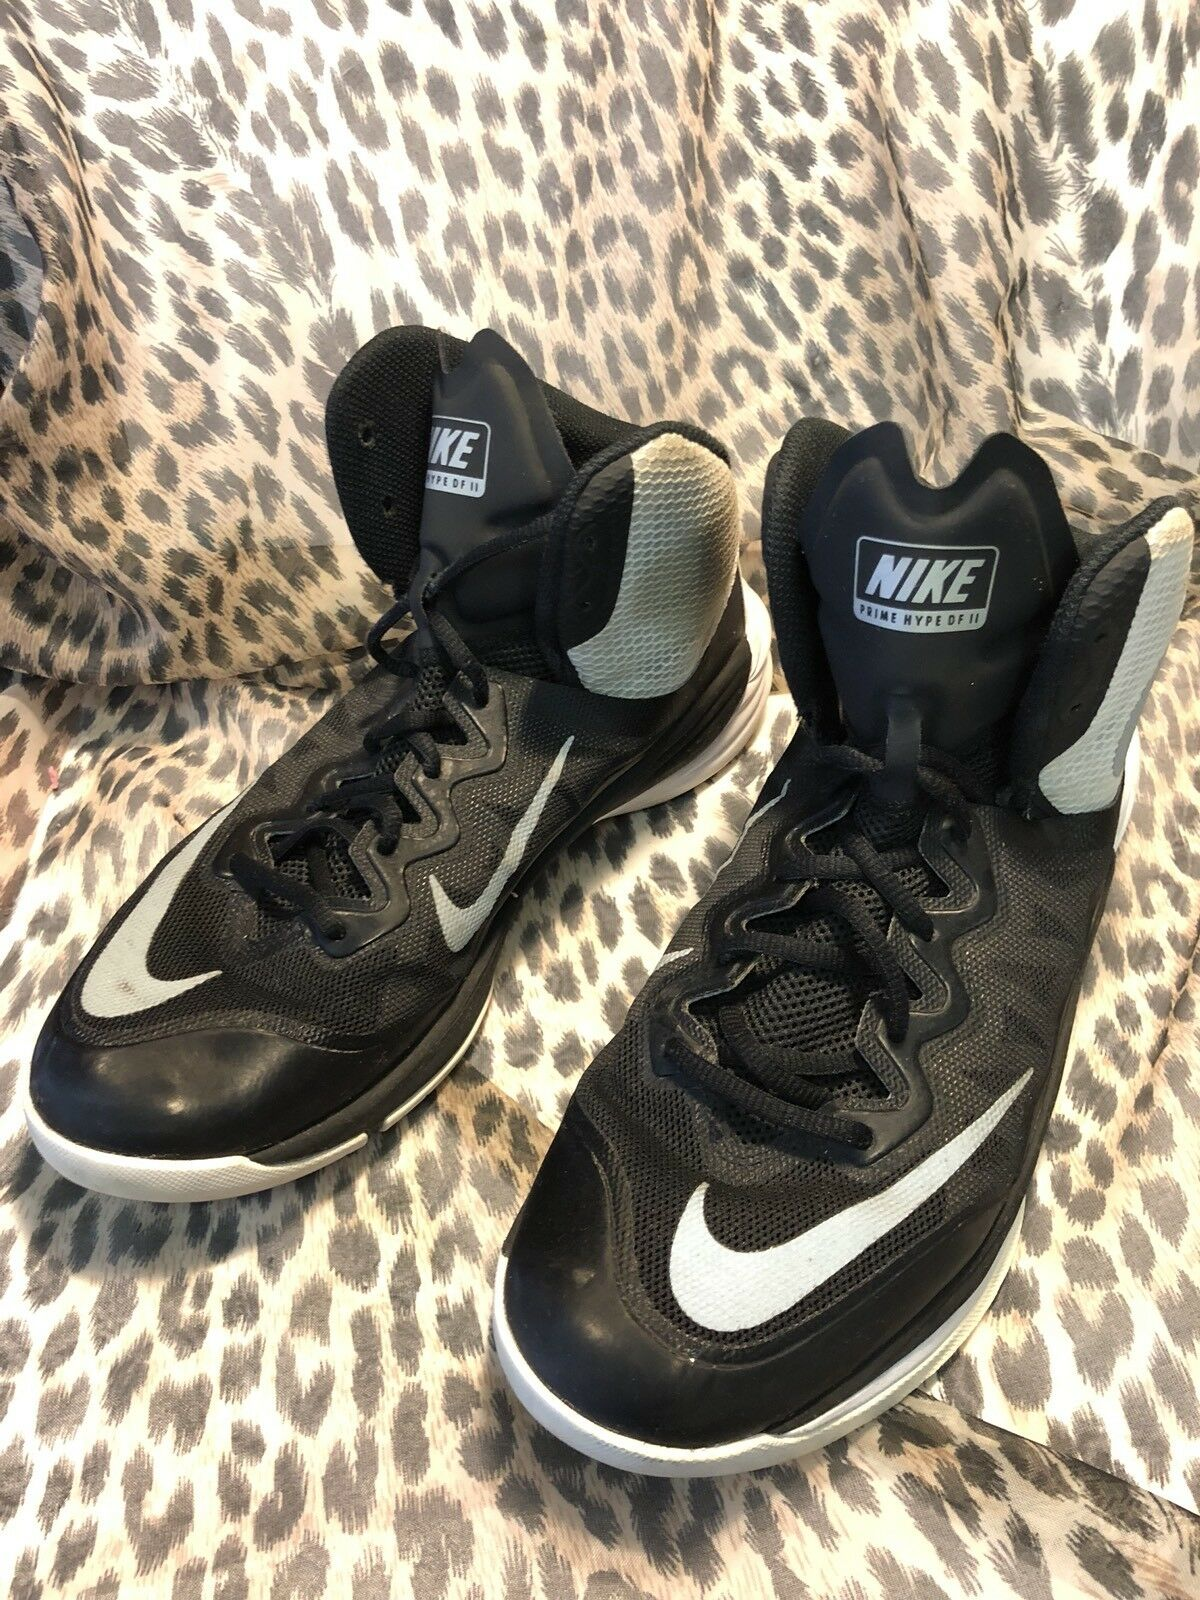 Nike Mens Prime Hype DF II Basketball Athletic Shoes 806941-001 Price reduction Wild casual shoes